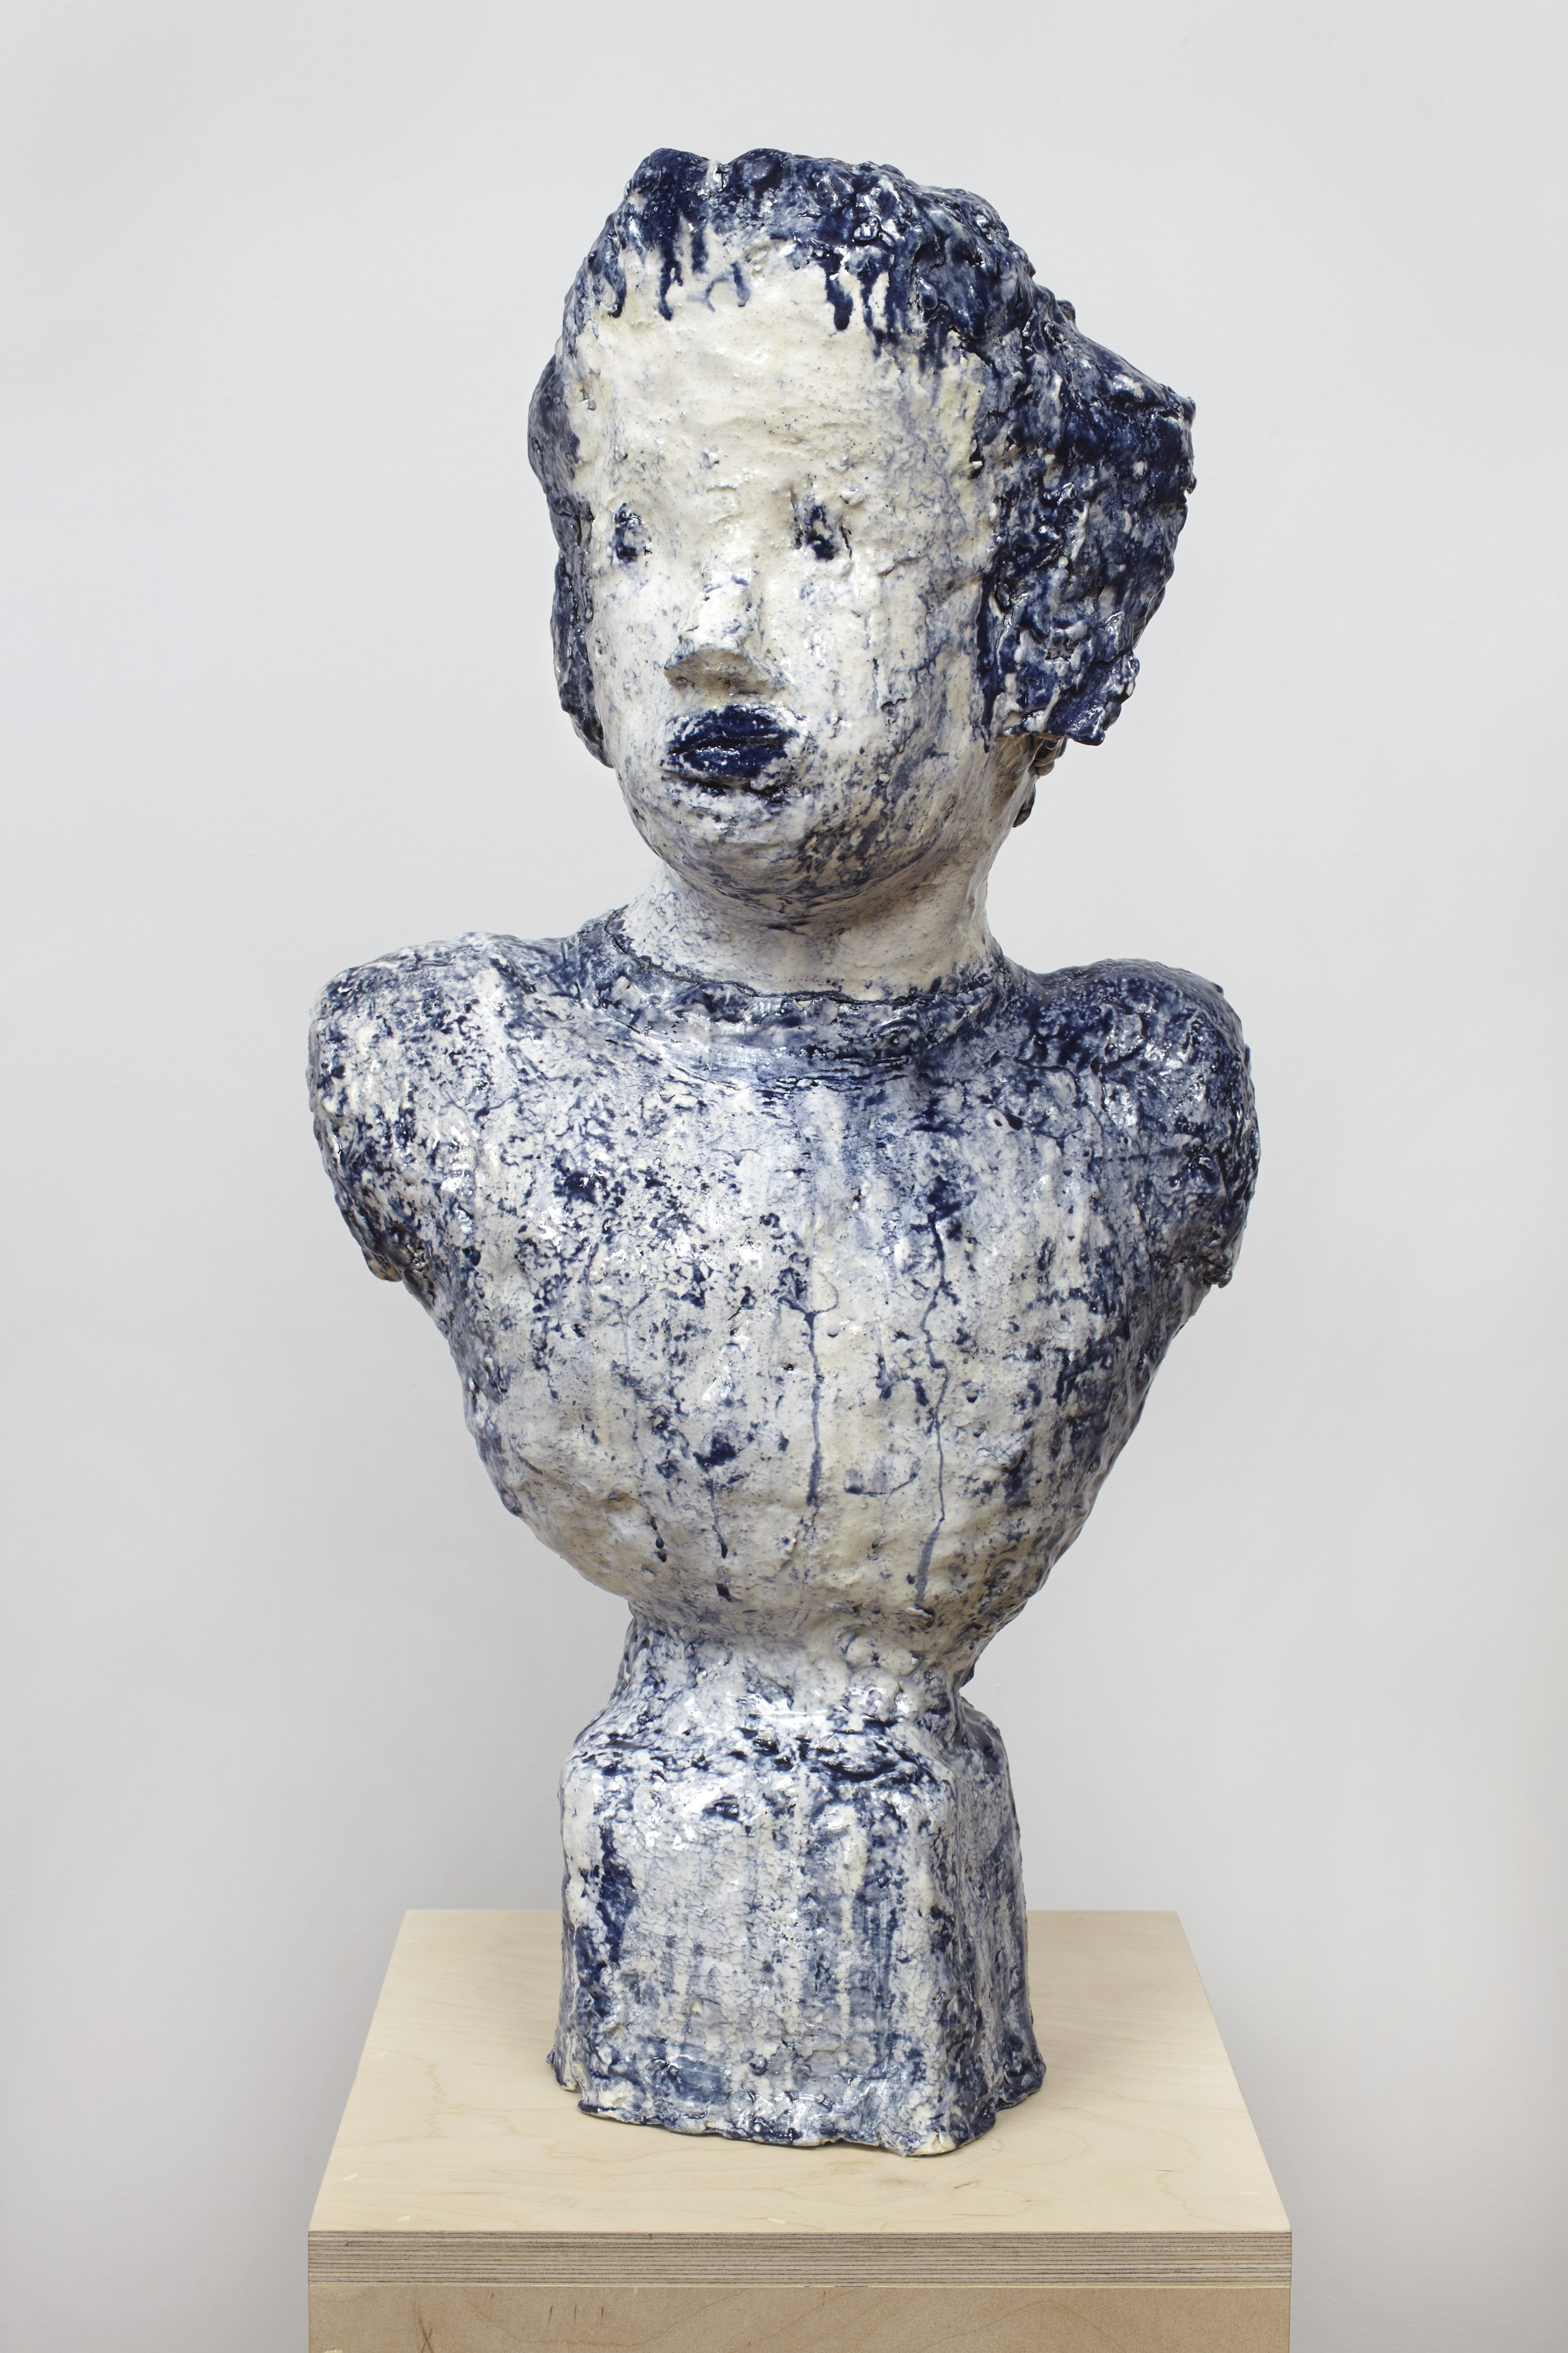 Dripping Cobalt Portrait Bust, 2015